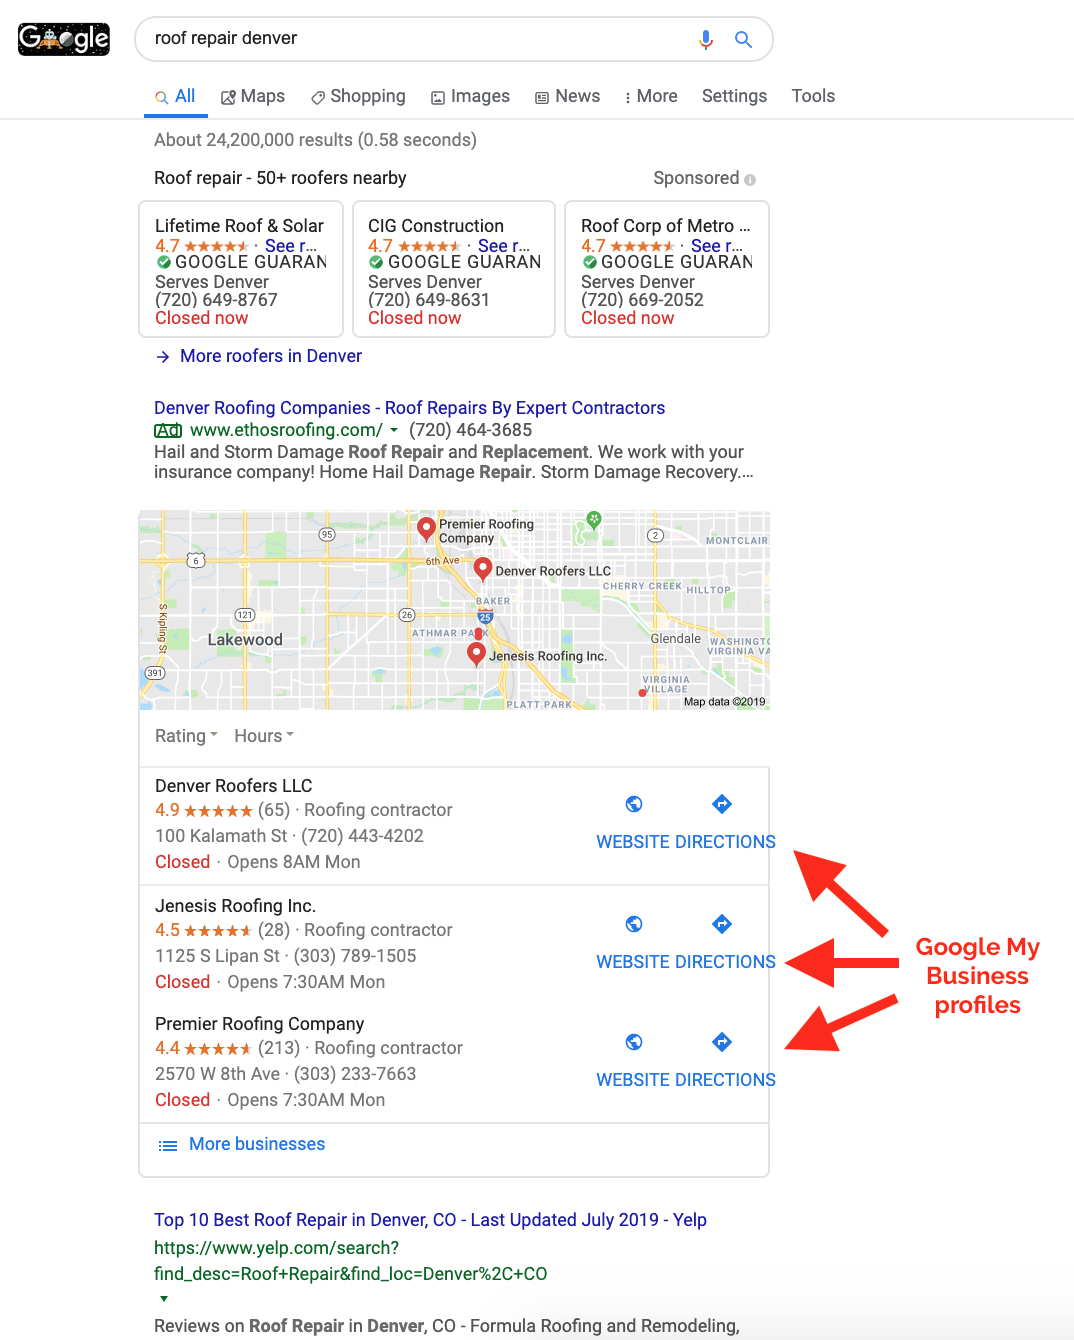 google my business profile local results